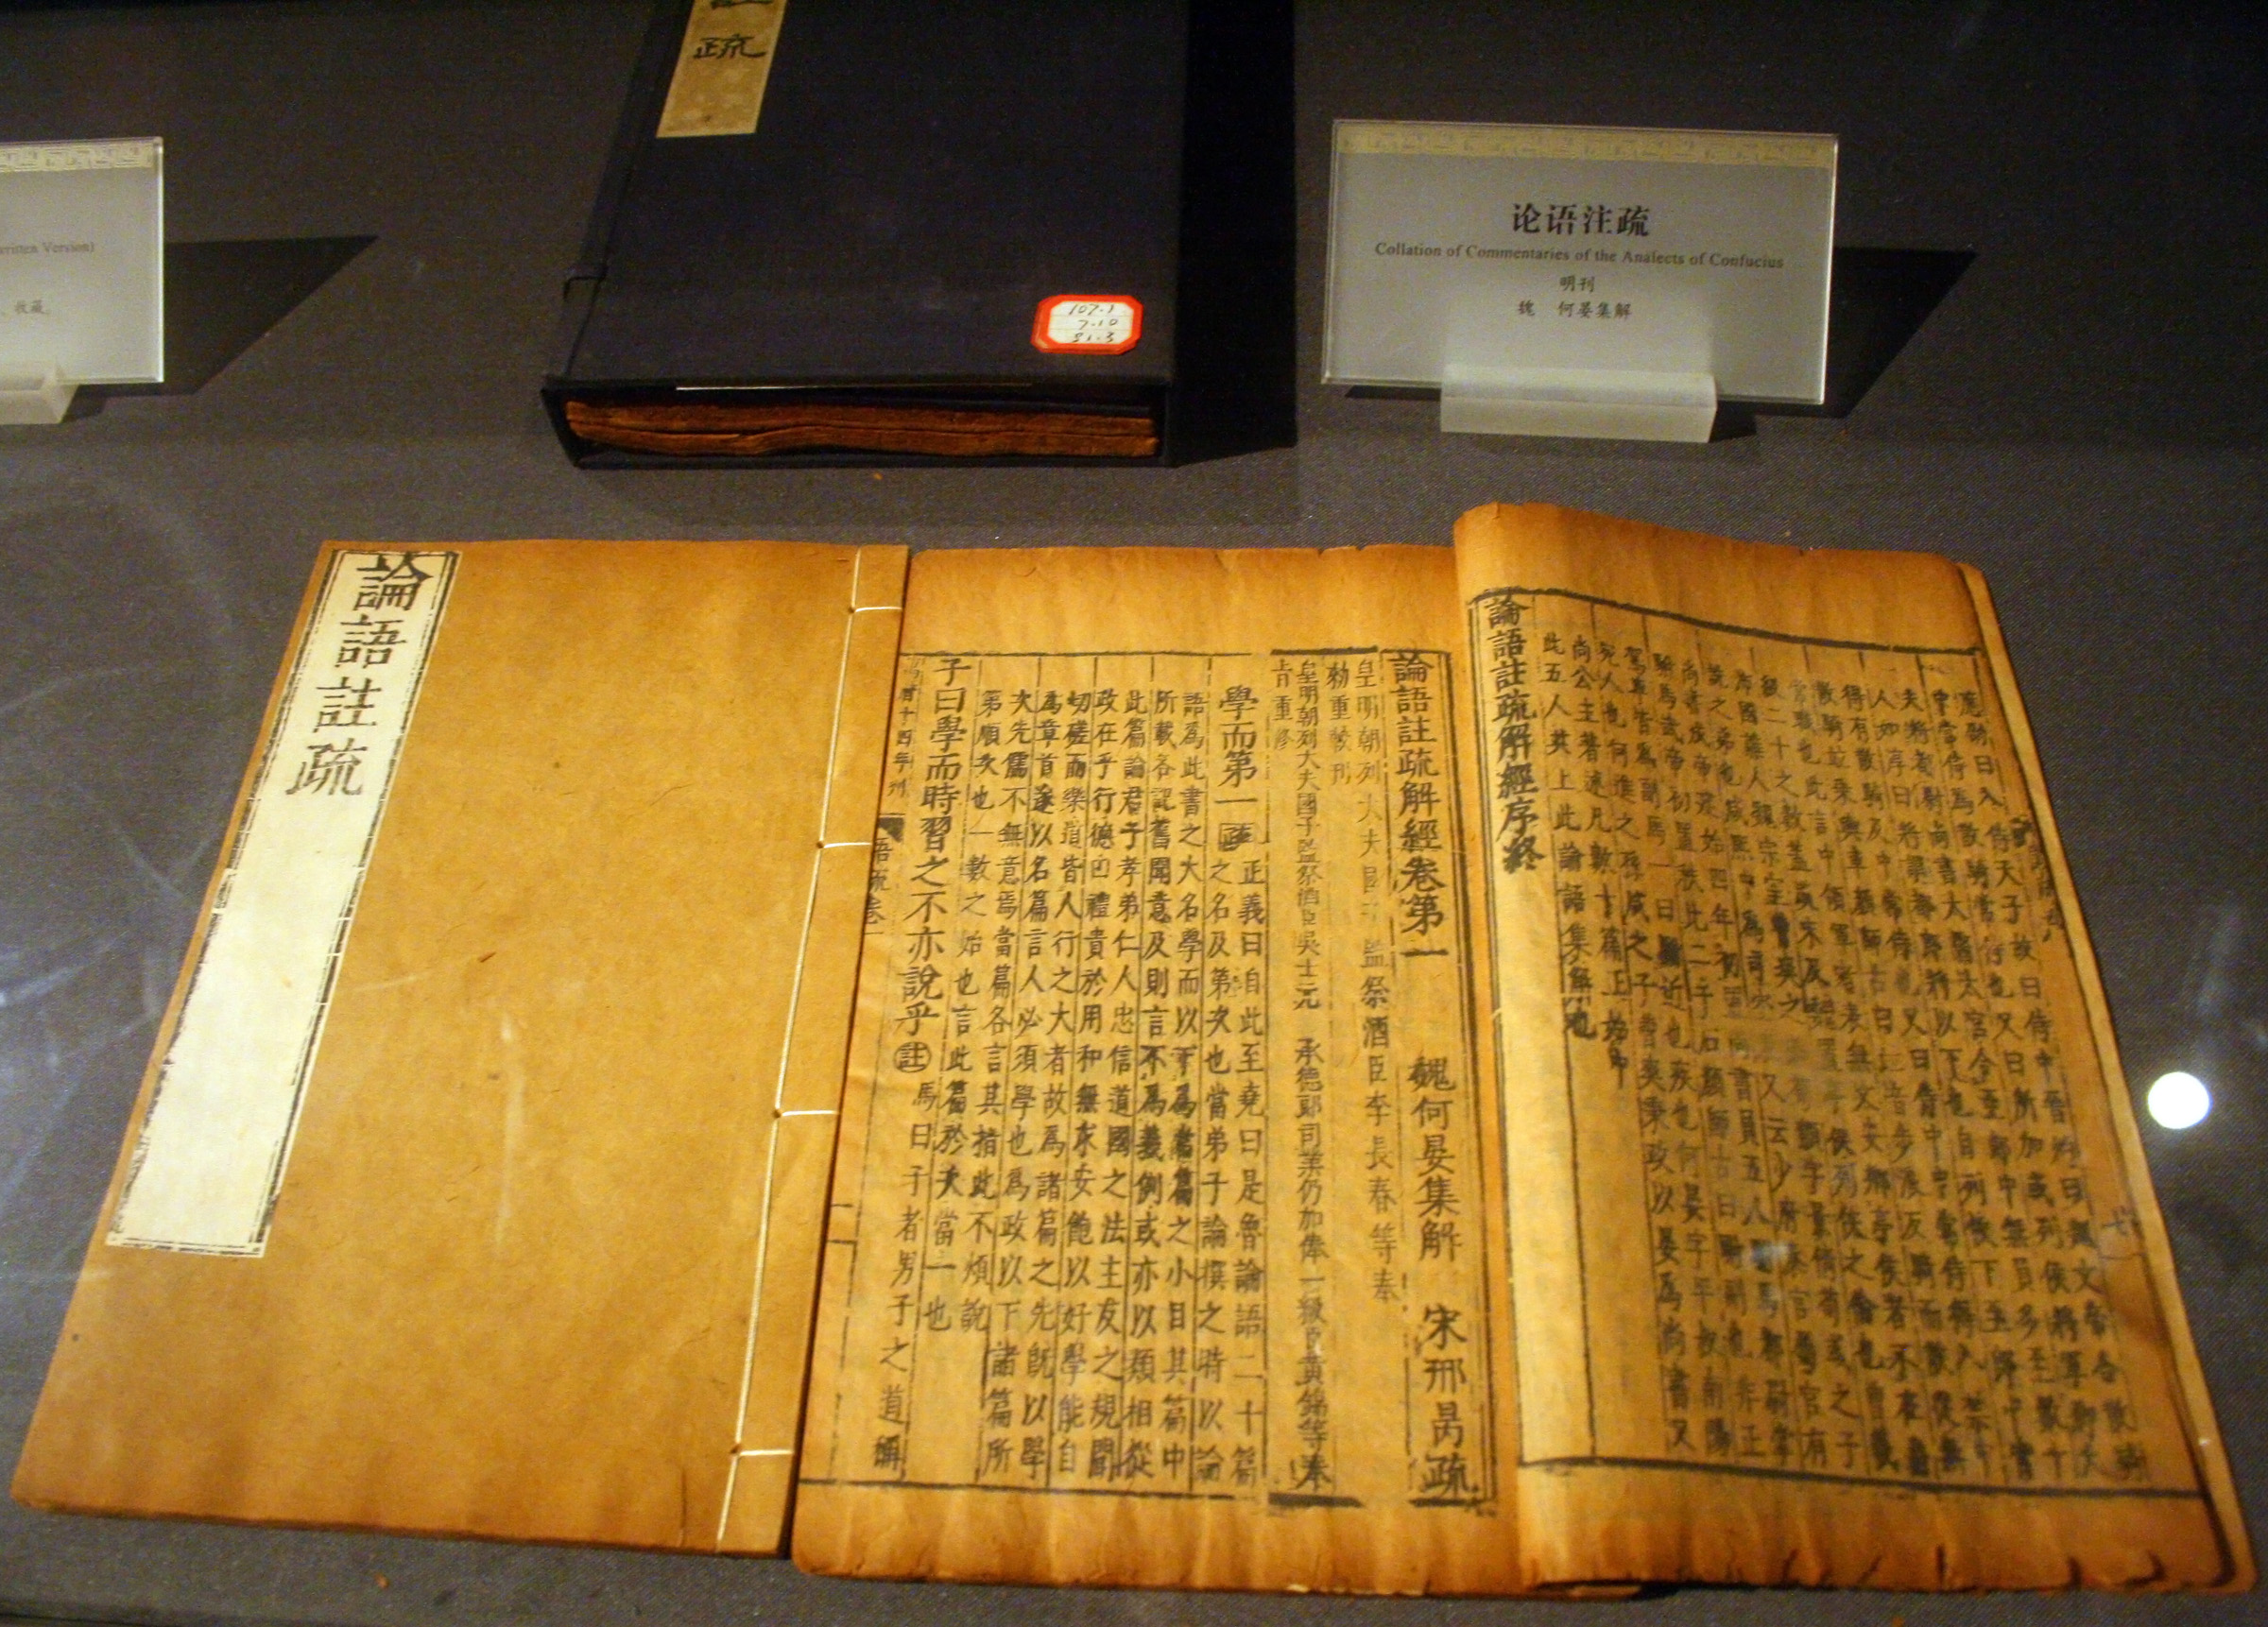 Commentaries of the Analects of Confucius